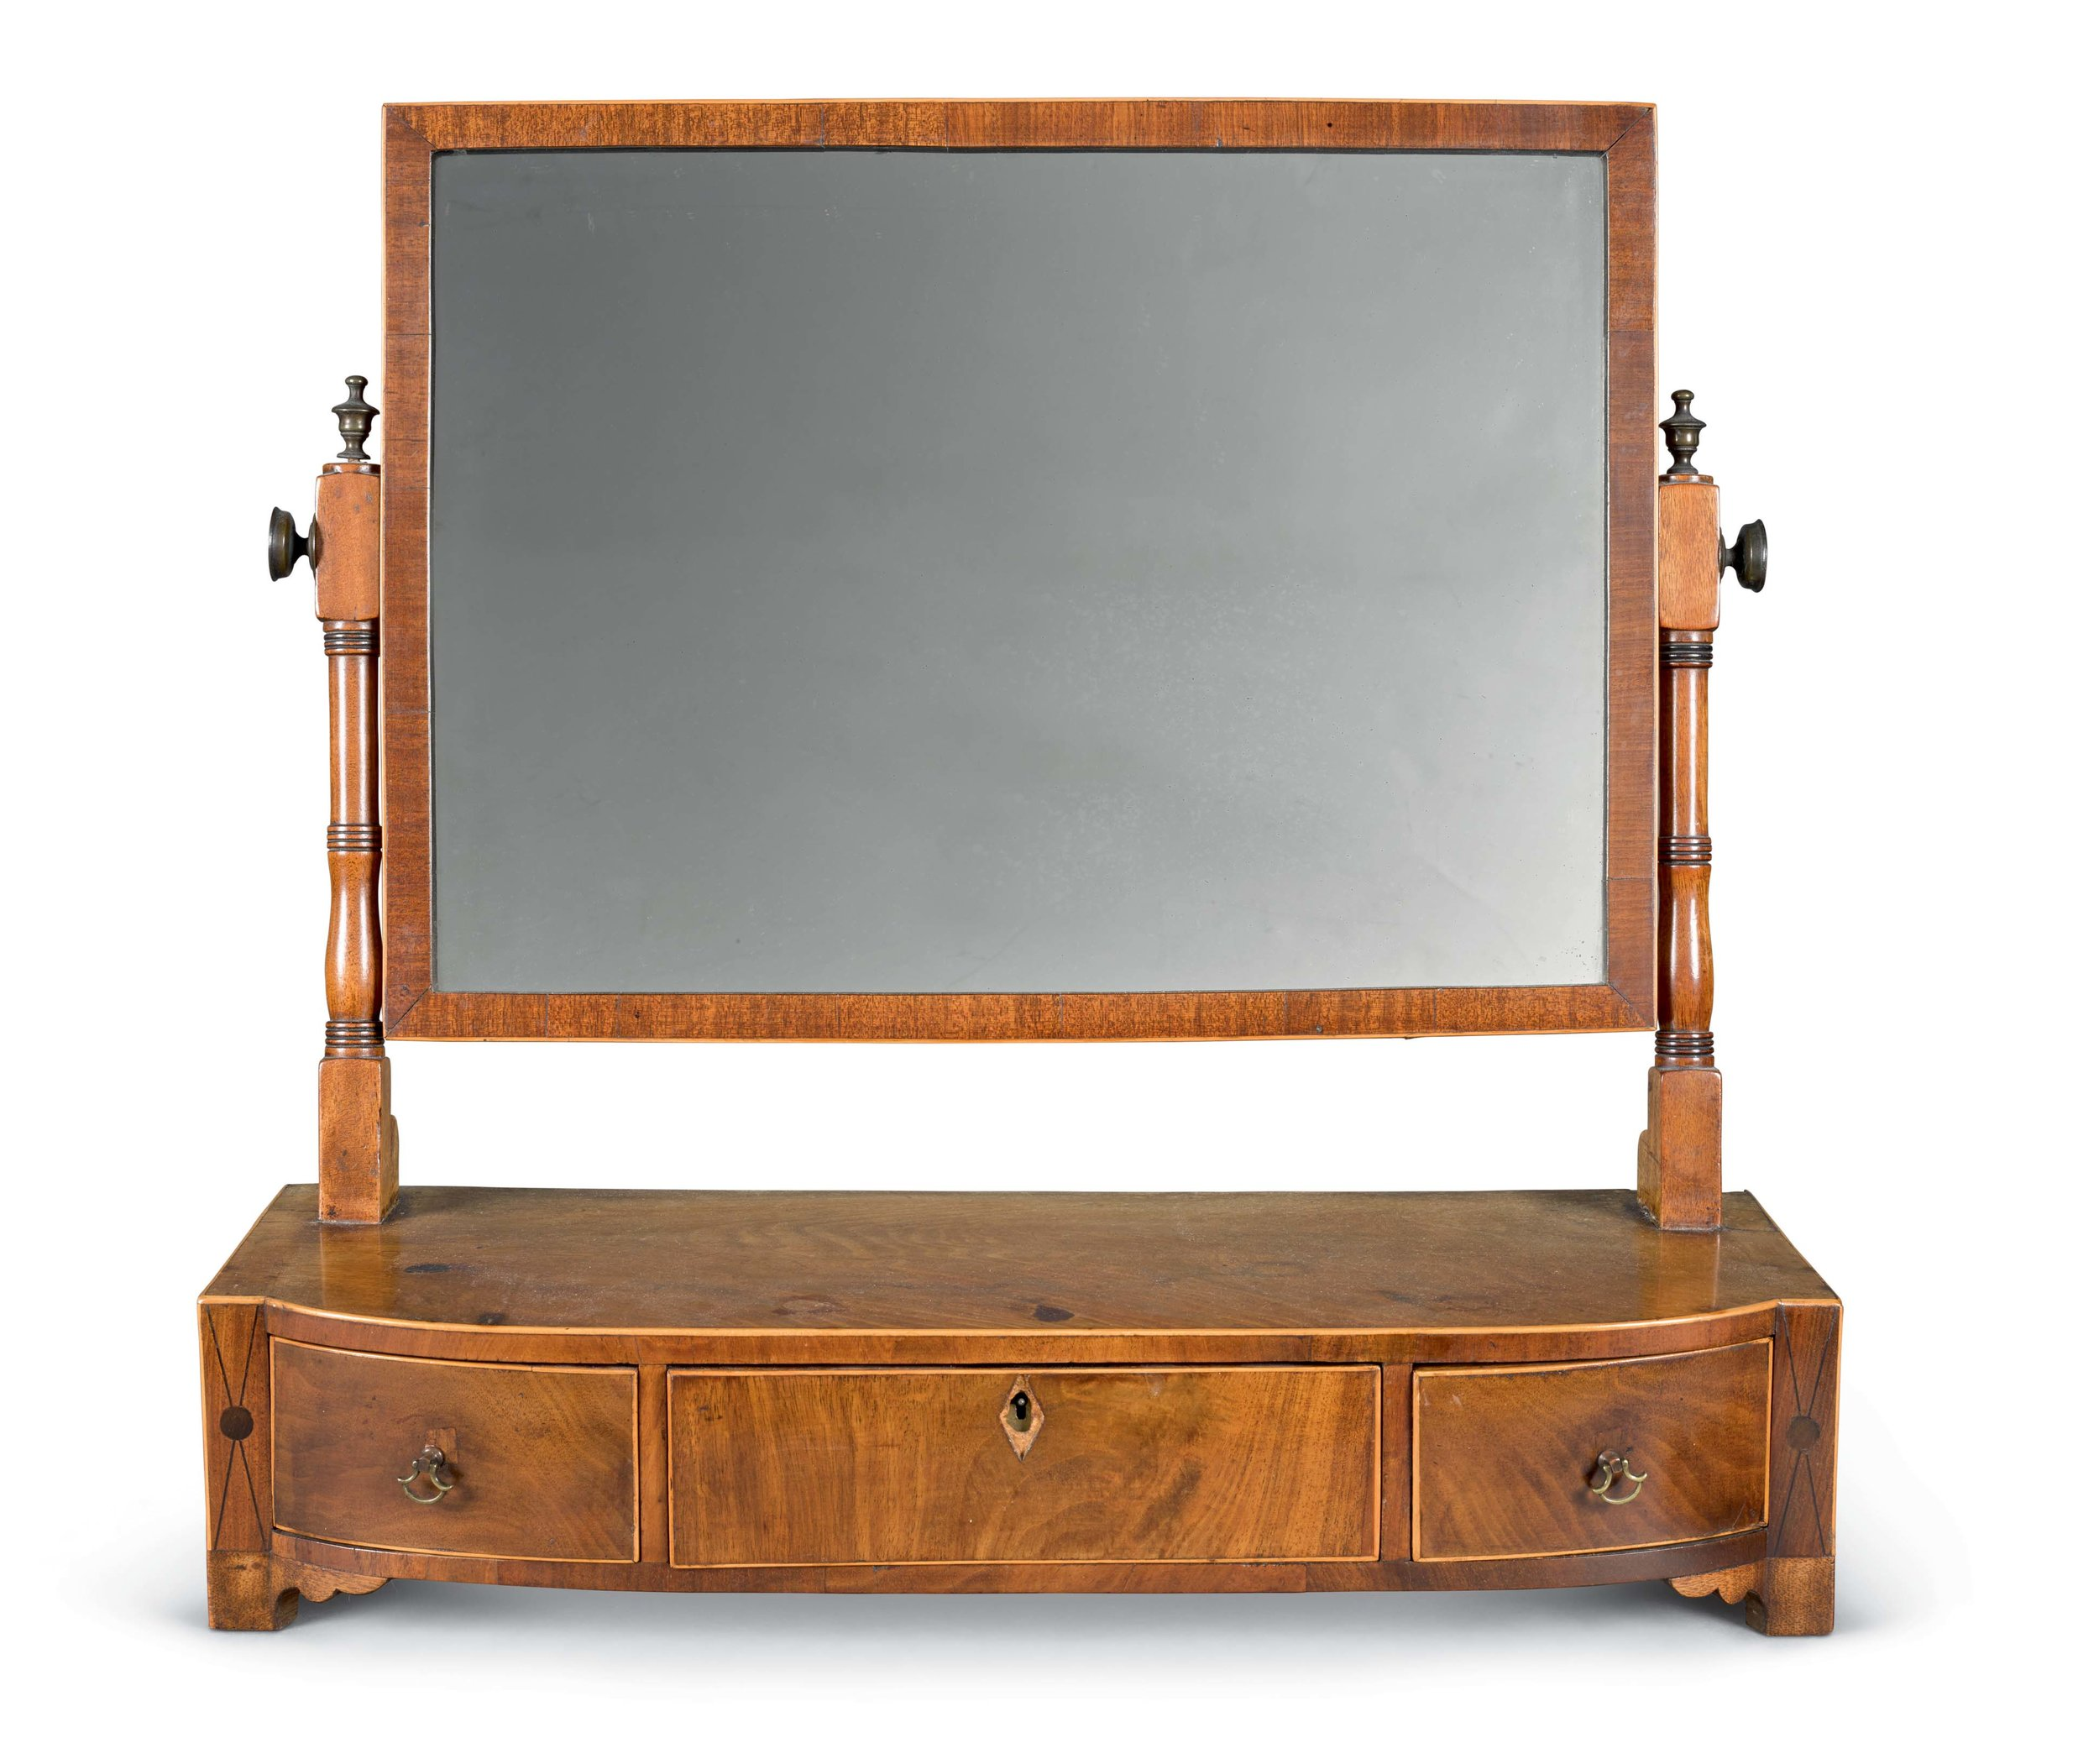 Toilet Mirror (Possibly Scottish) | Mahogany, boxwood and ebony inlay | 55.5 by 58.5 by 21cm., 21¼ by 23 by 8¼in | 19th century | Made circa 1820